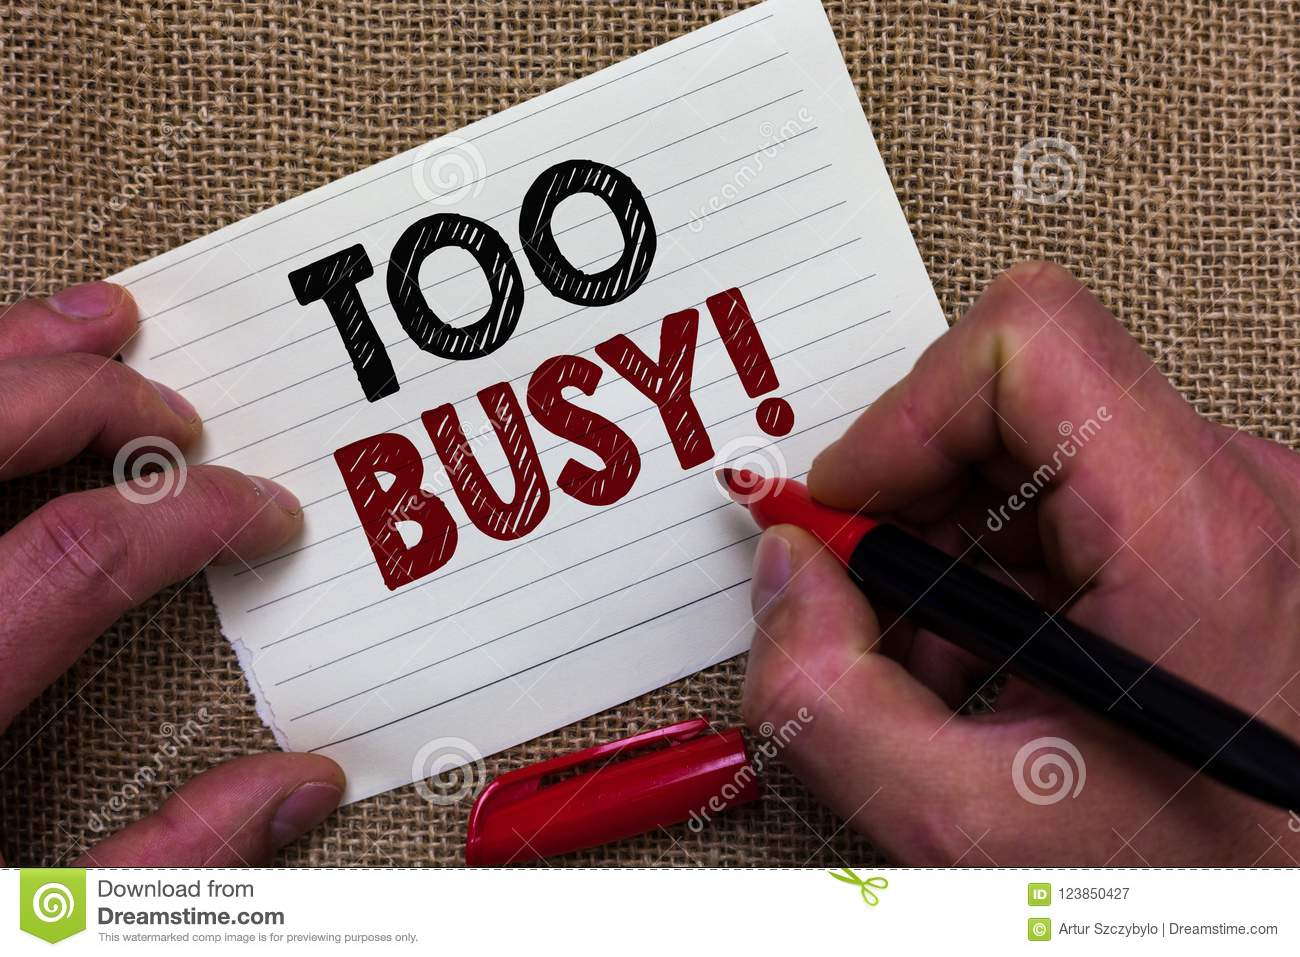 Too Busy Today..!